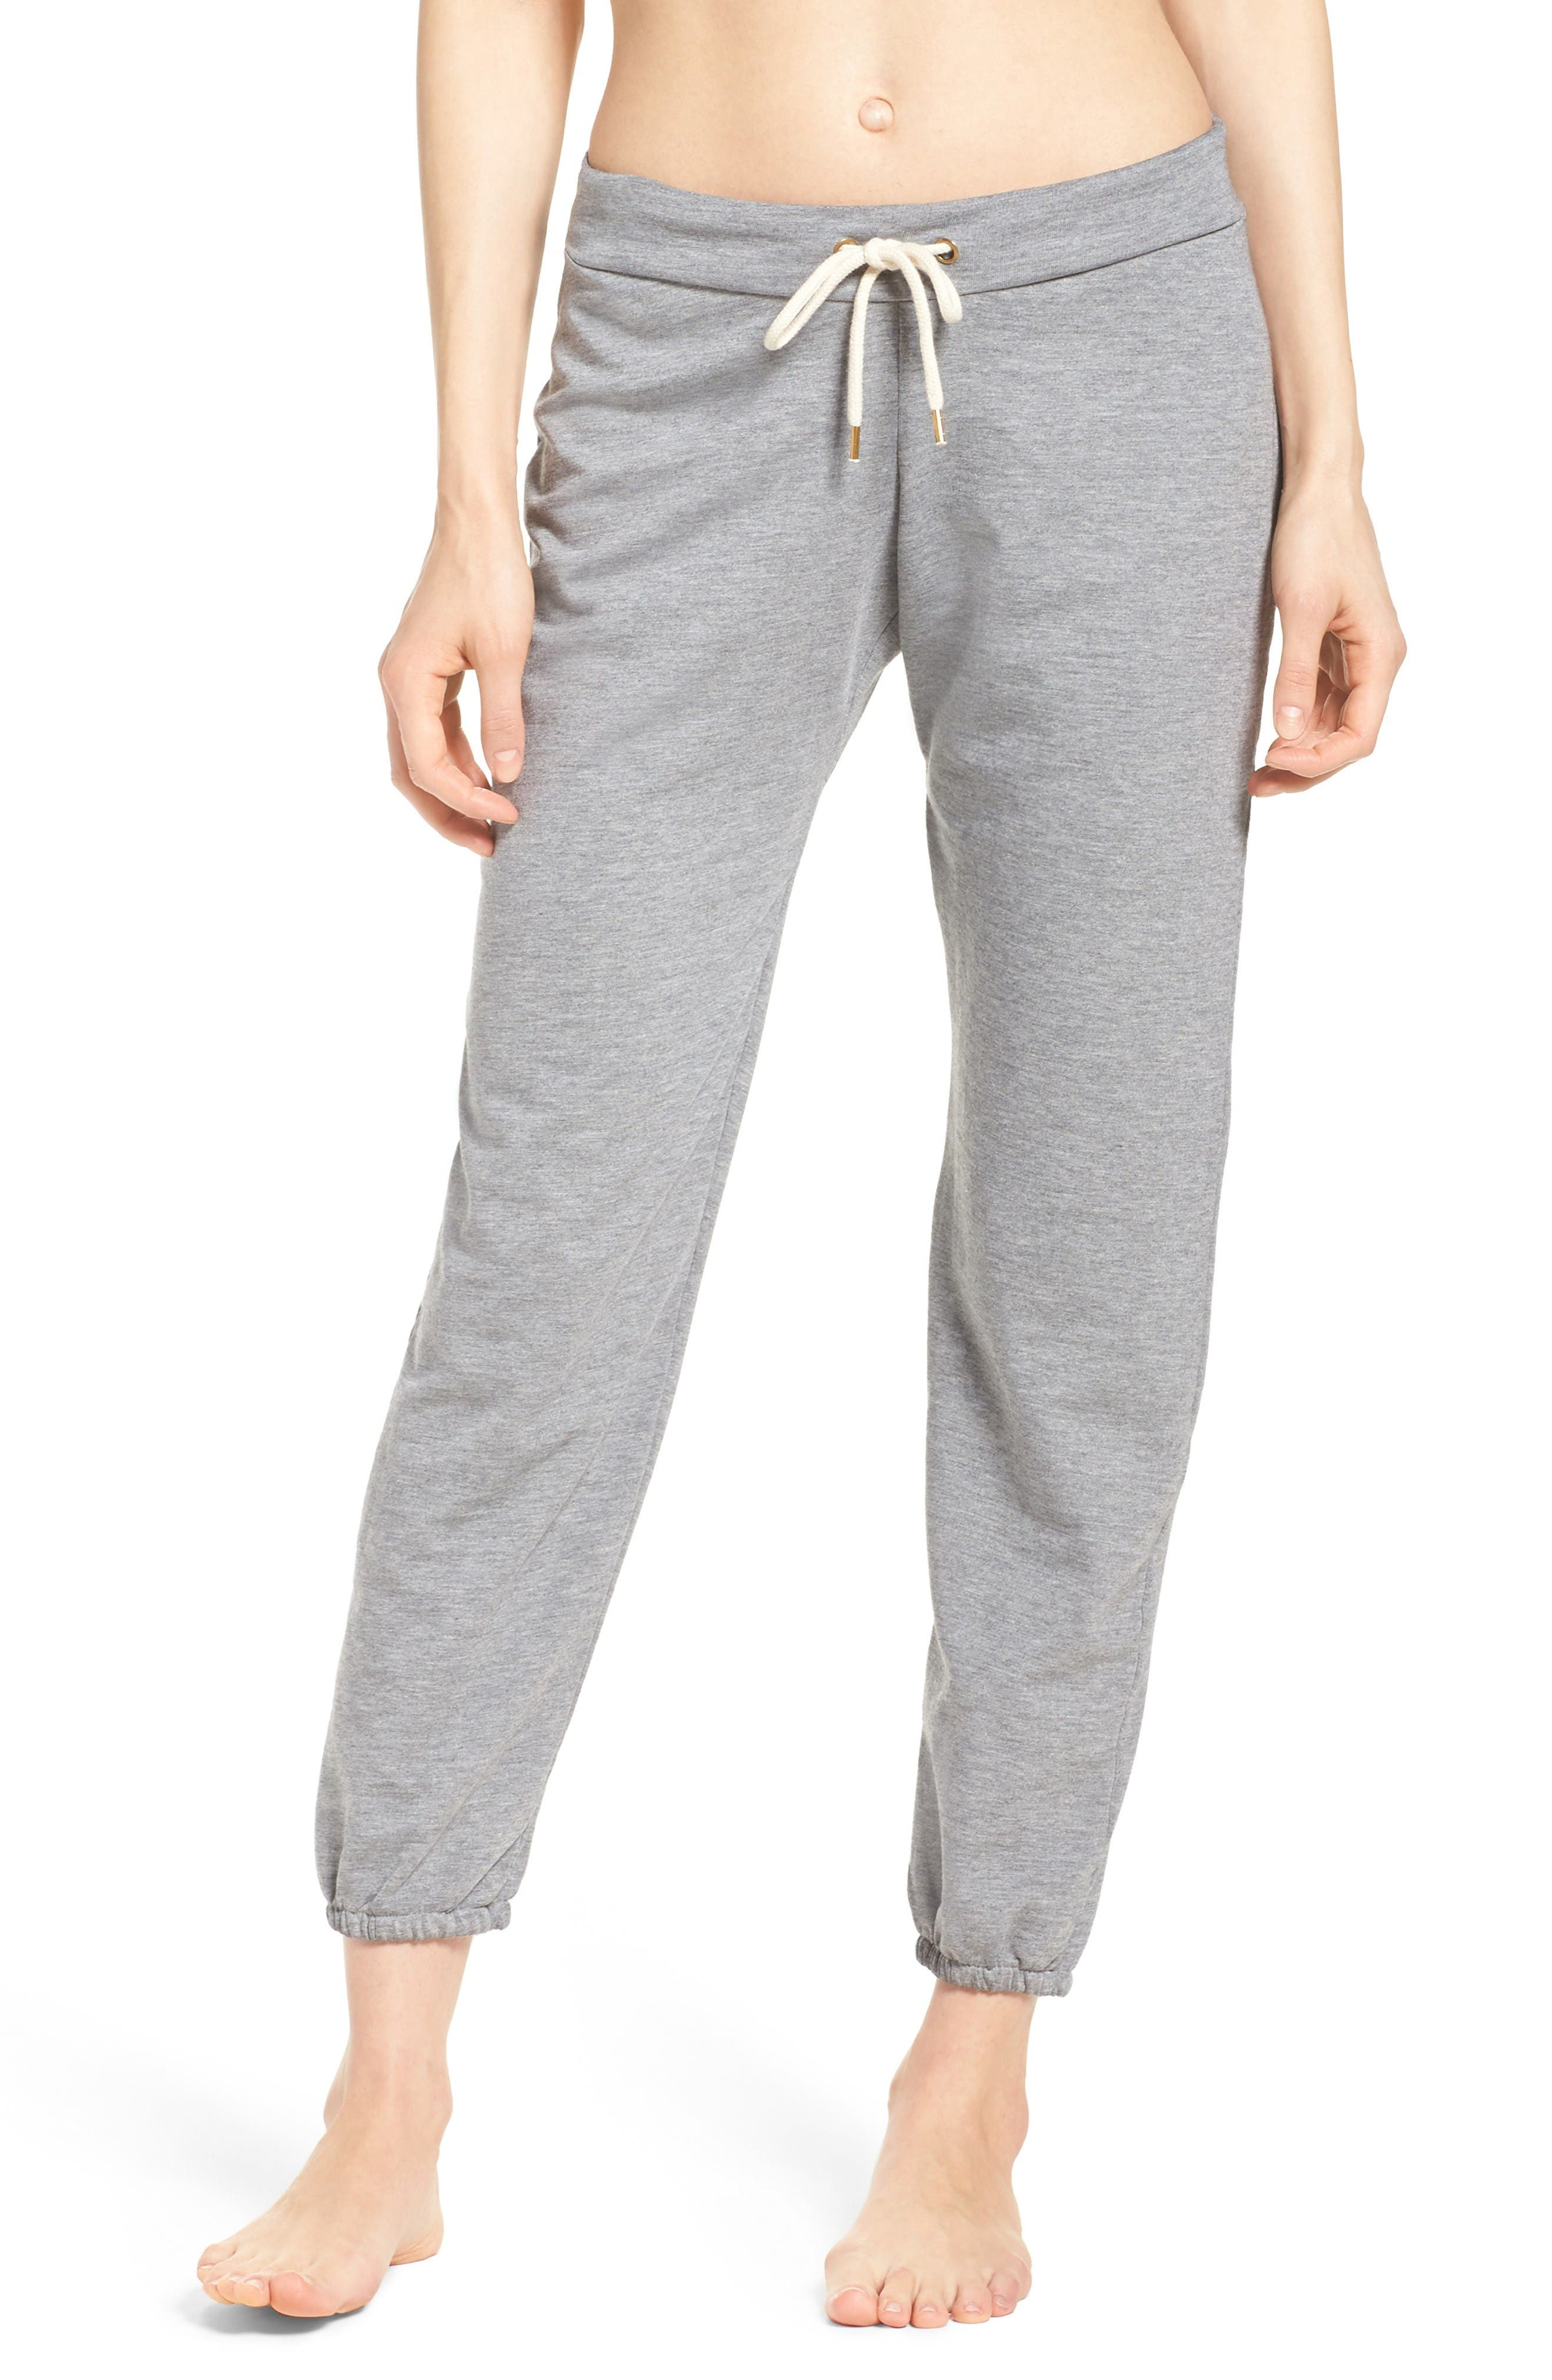 French Terry Lounge Pants,                         Main,                         color, Heather Grey